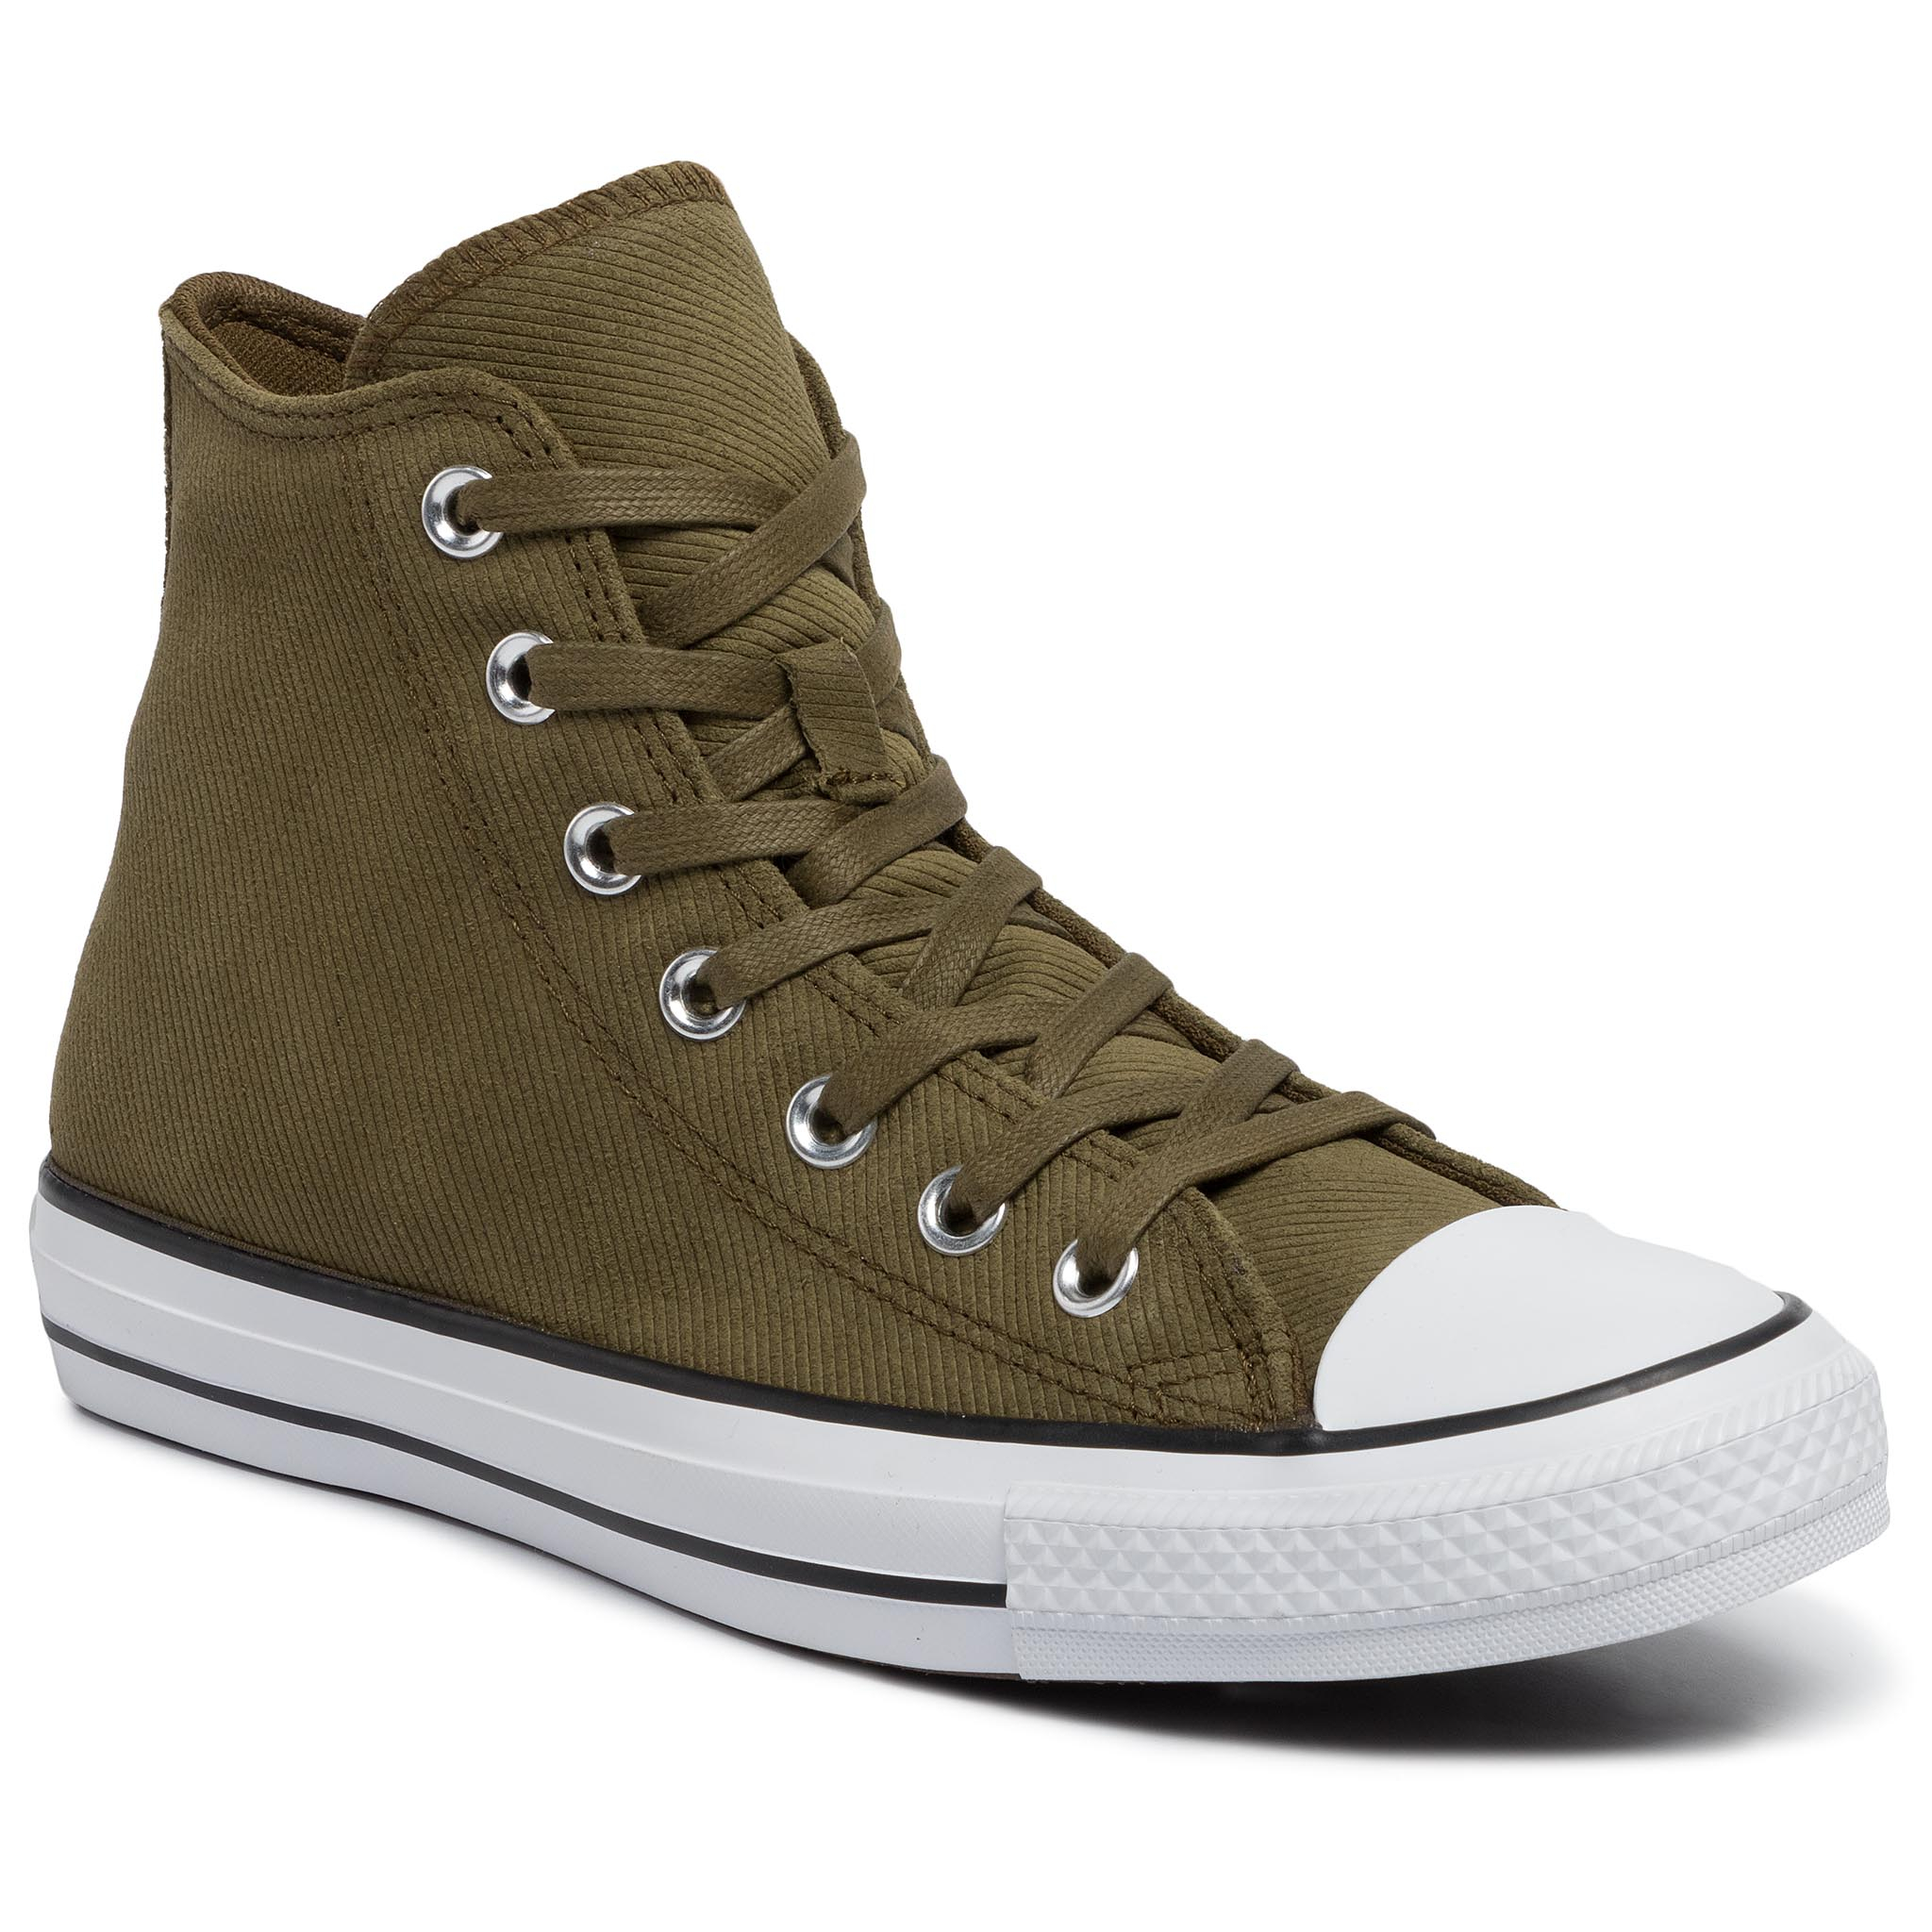 Teniși Converse - Ctas Hi 564963c Surplus Olive/Habanero Red imagine epantofi.ro 2021